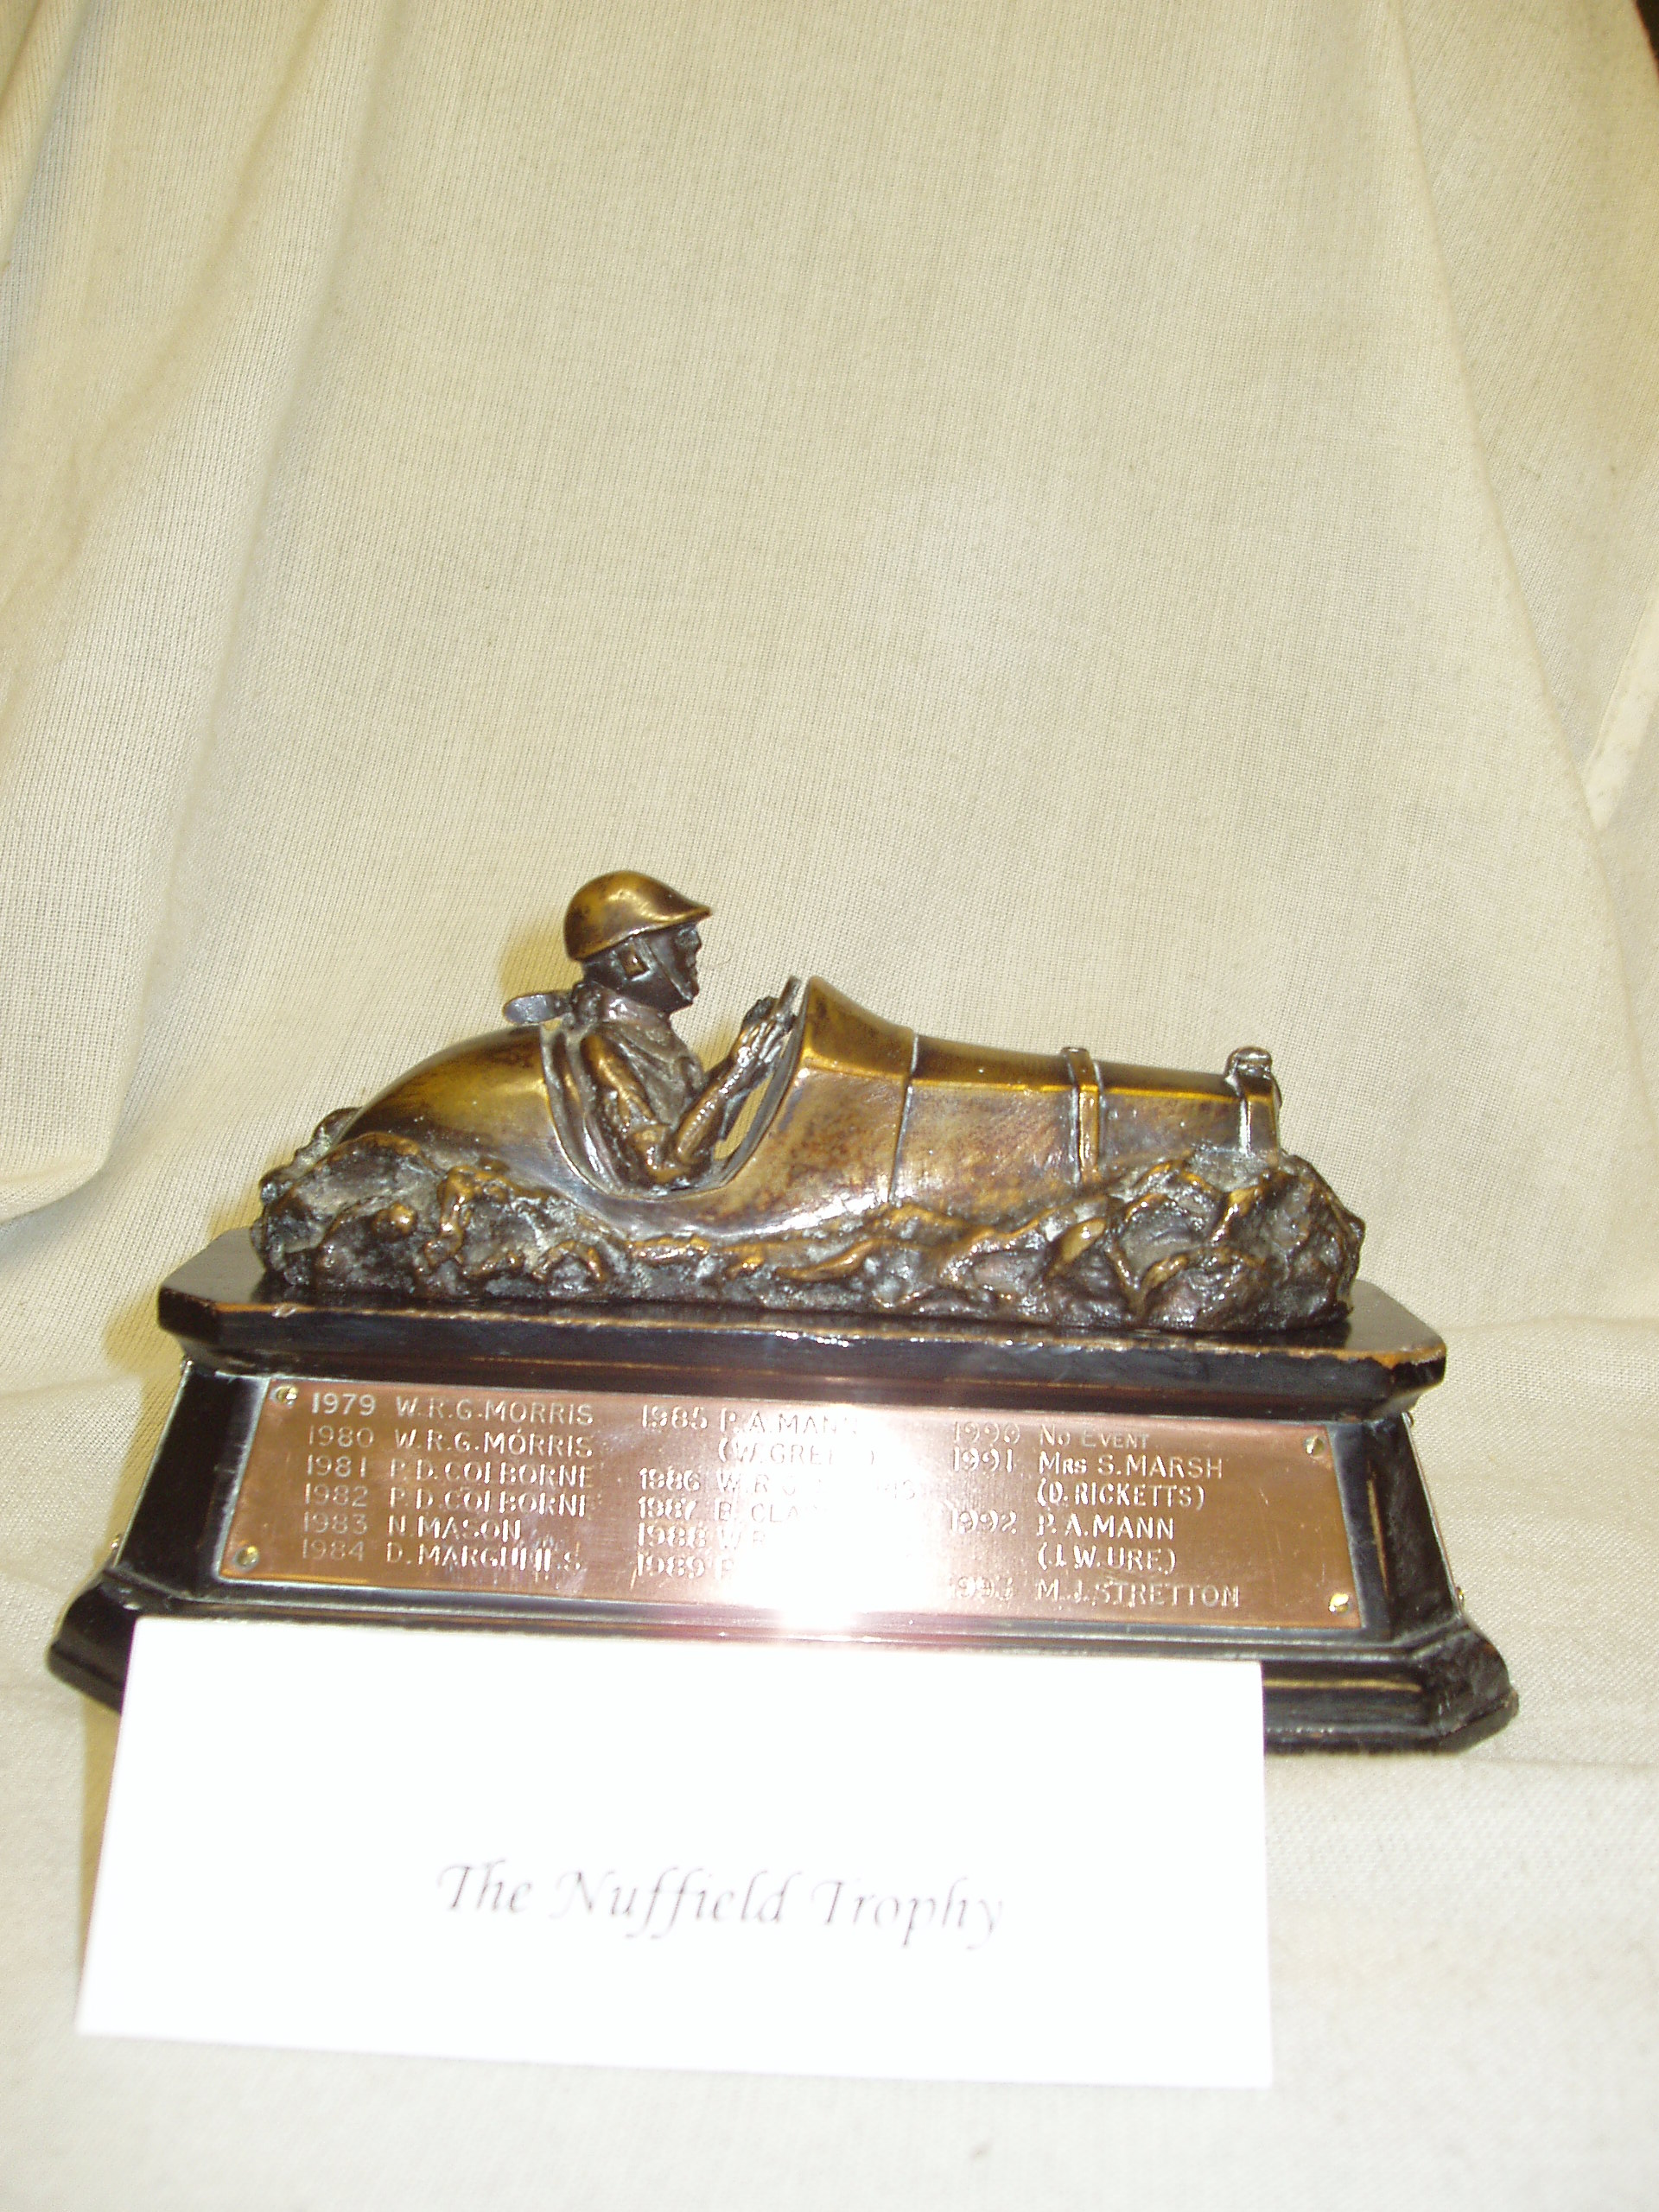 NUFFIELD TROPHY cover